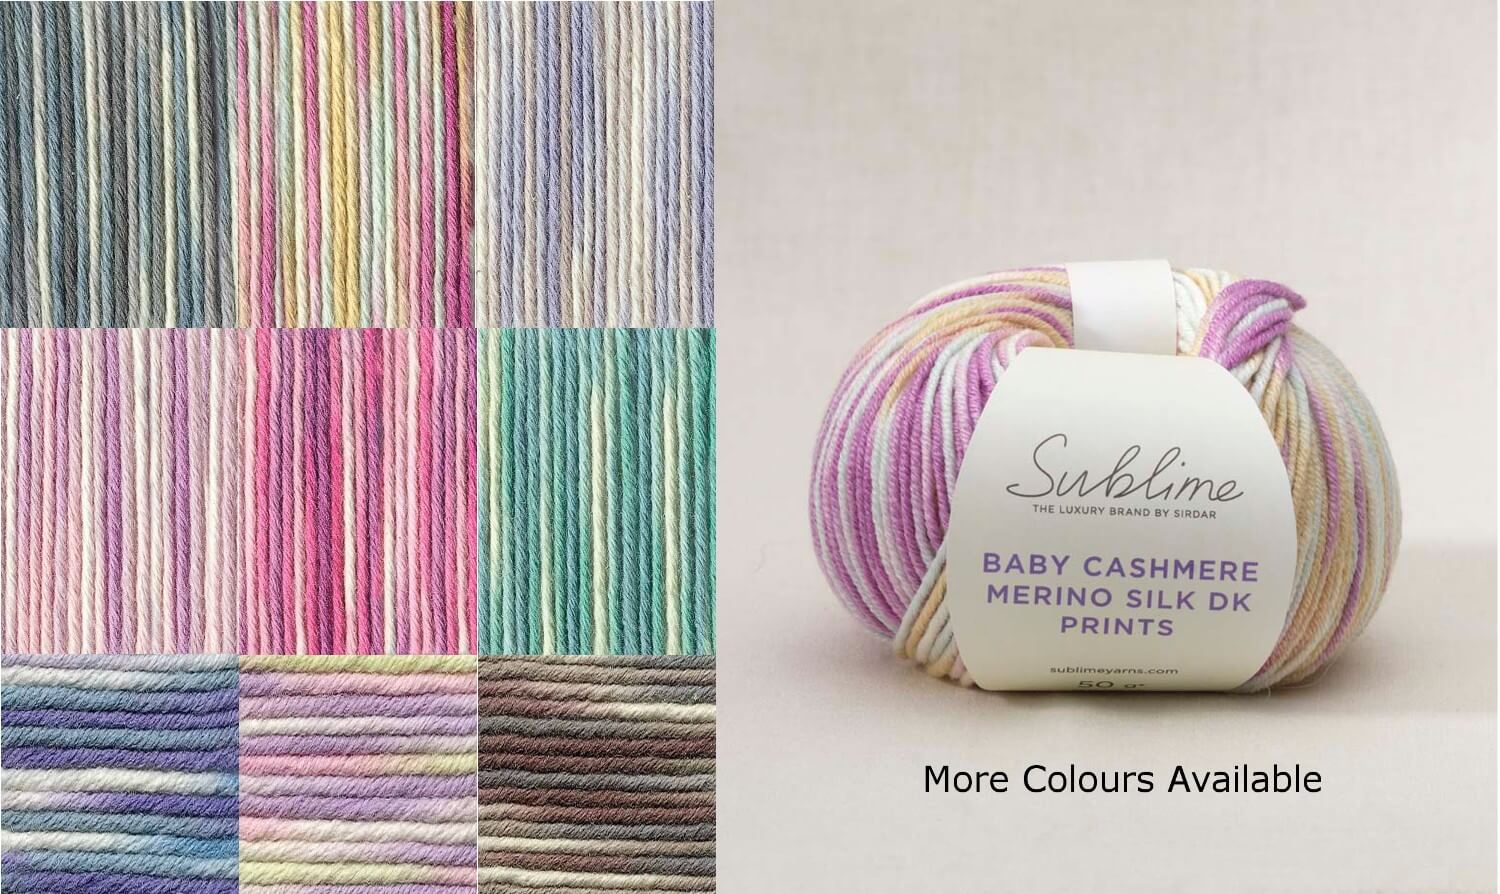 Sirdar Sublime Baby Cashmere Merino Silk Prints DK 50g Ball Knit Craft Yarn 567 Under The Sea